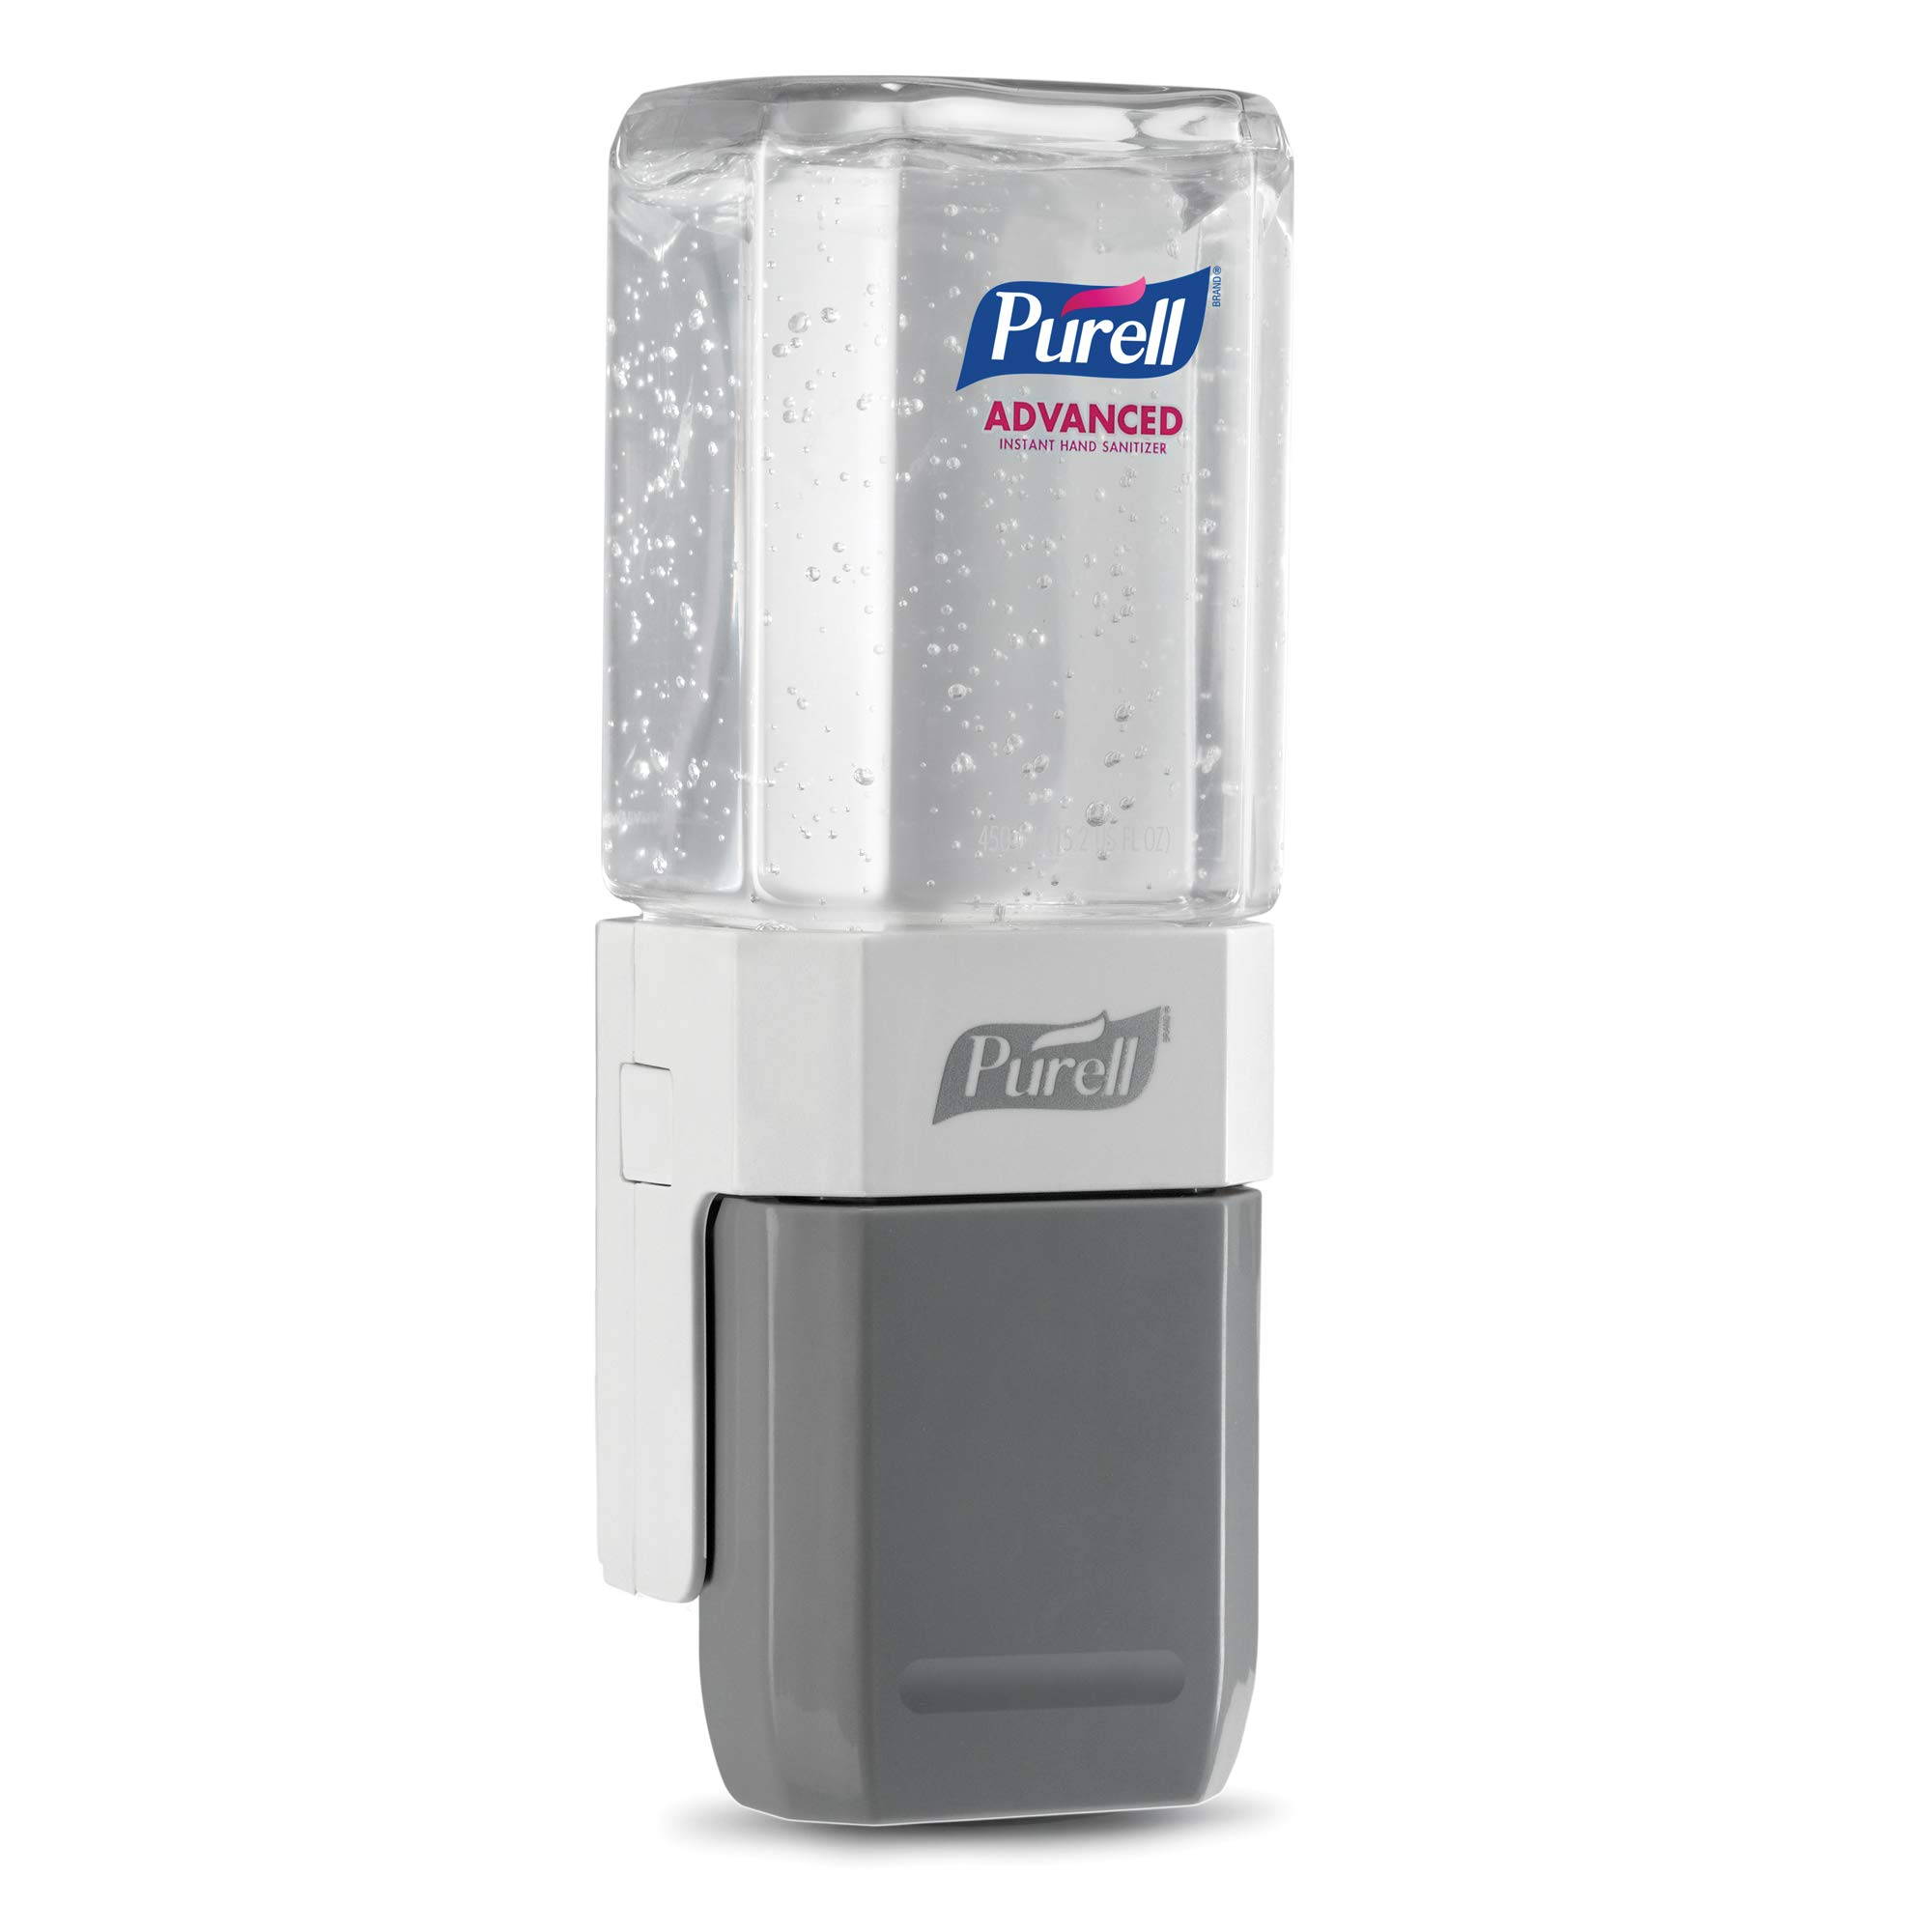 퓨렐 ES 푸쉬 디스펜서, 리필용 손세정제 세트 구성 PURELL Advanced Hand Sanitizer ES System Starter Kit, 1-450 mL Gel Sanitizer Refill + 1- PURELL ES Compact Push-Style Dispenser - 1450-D8